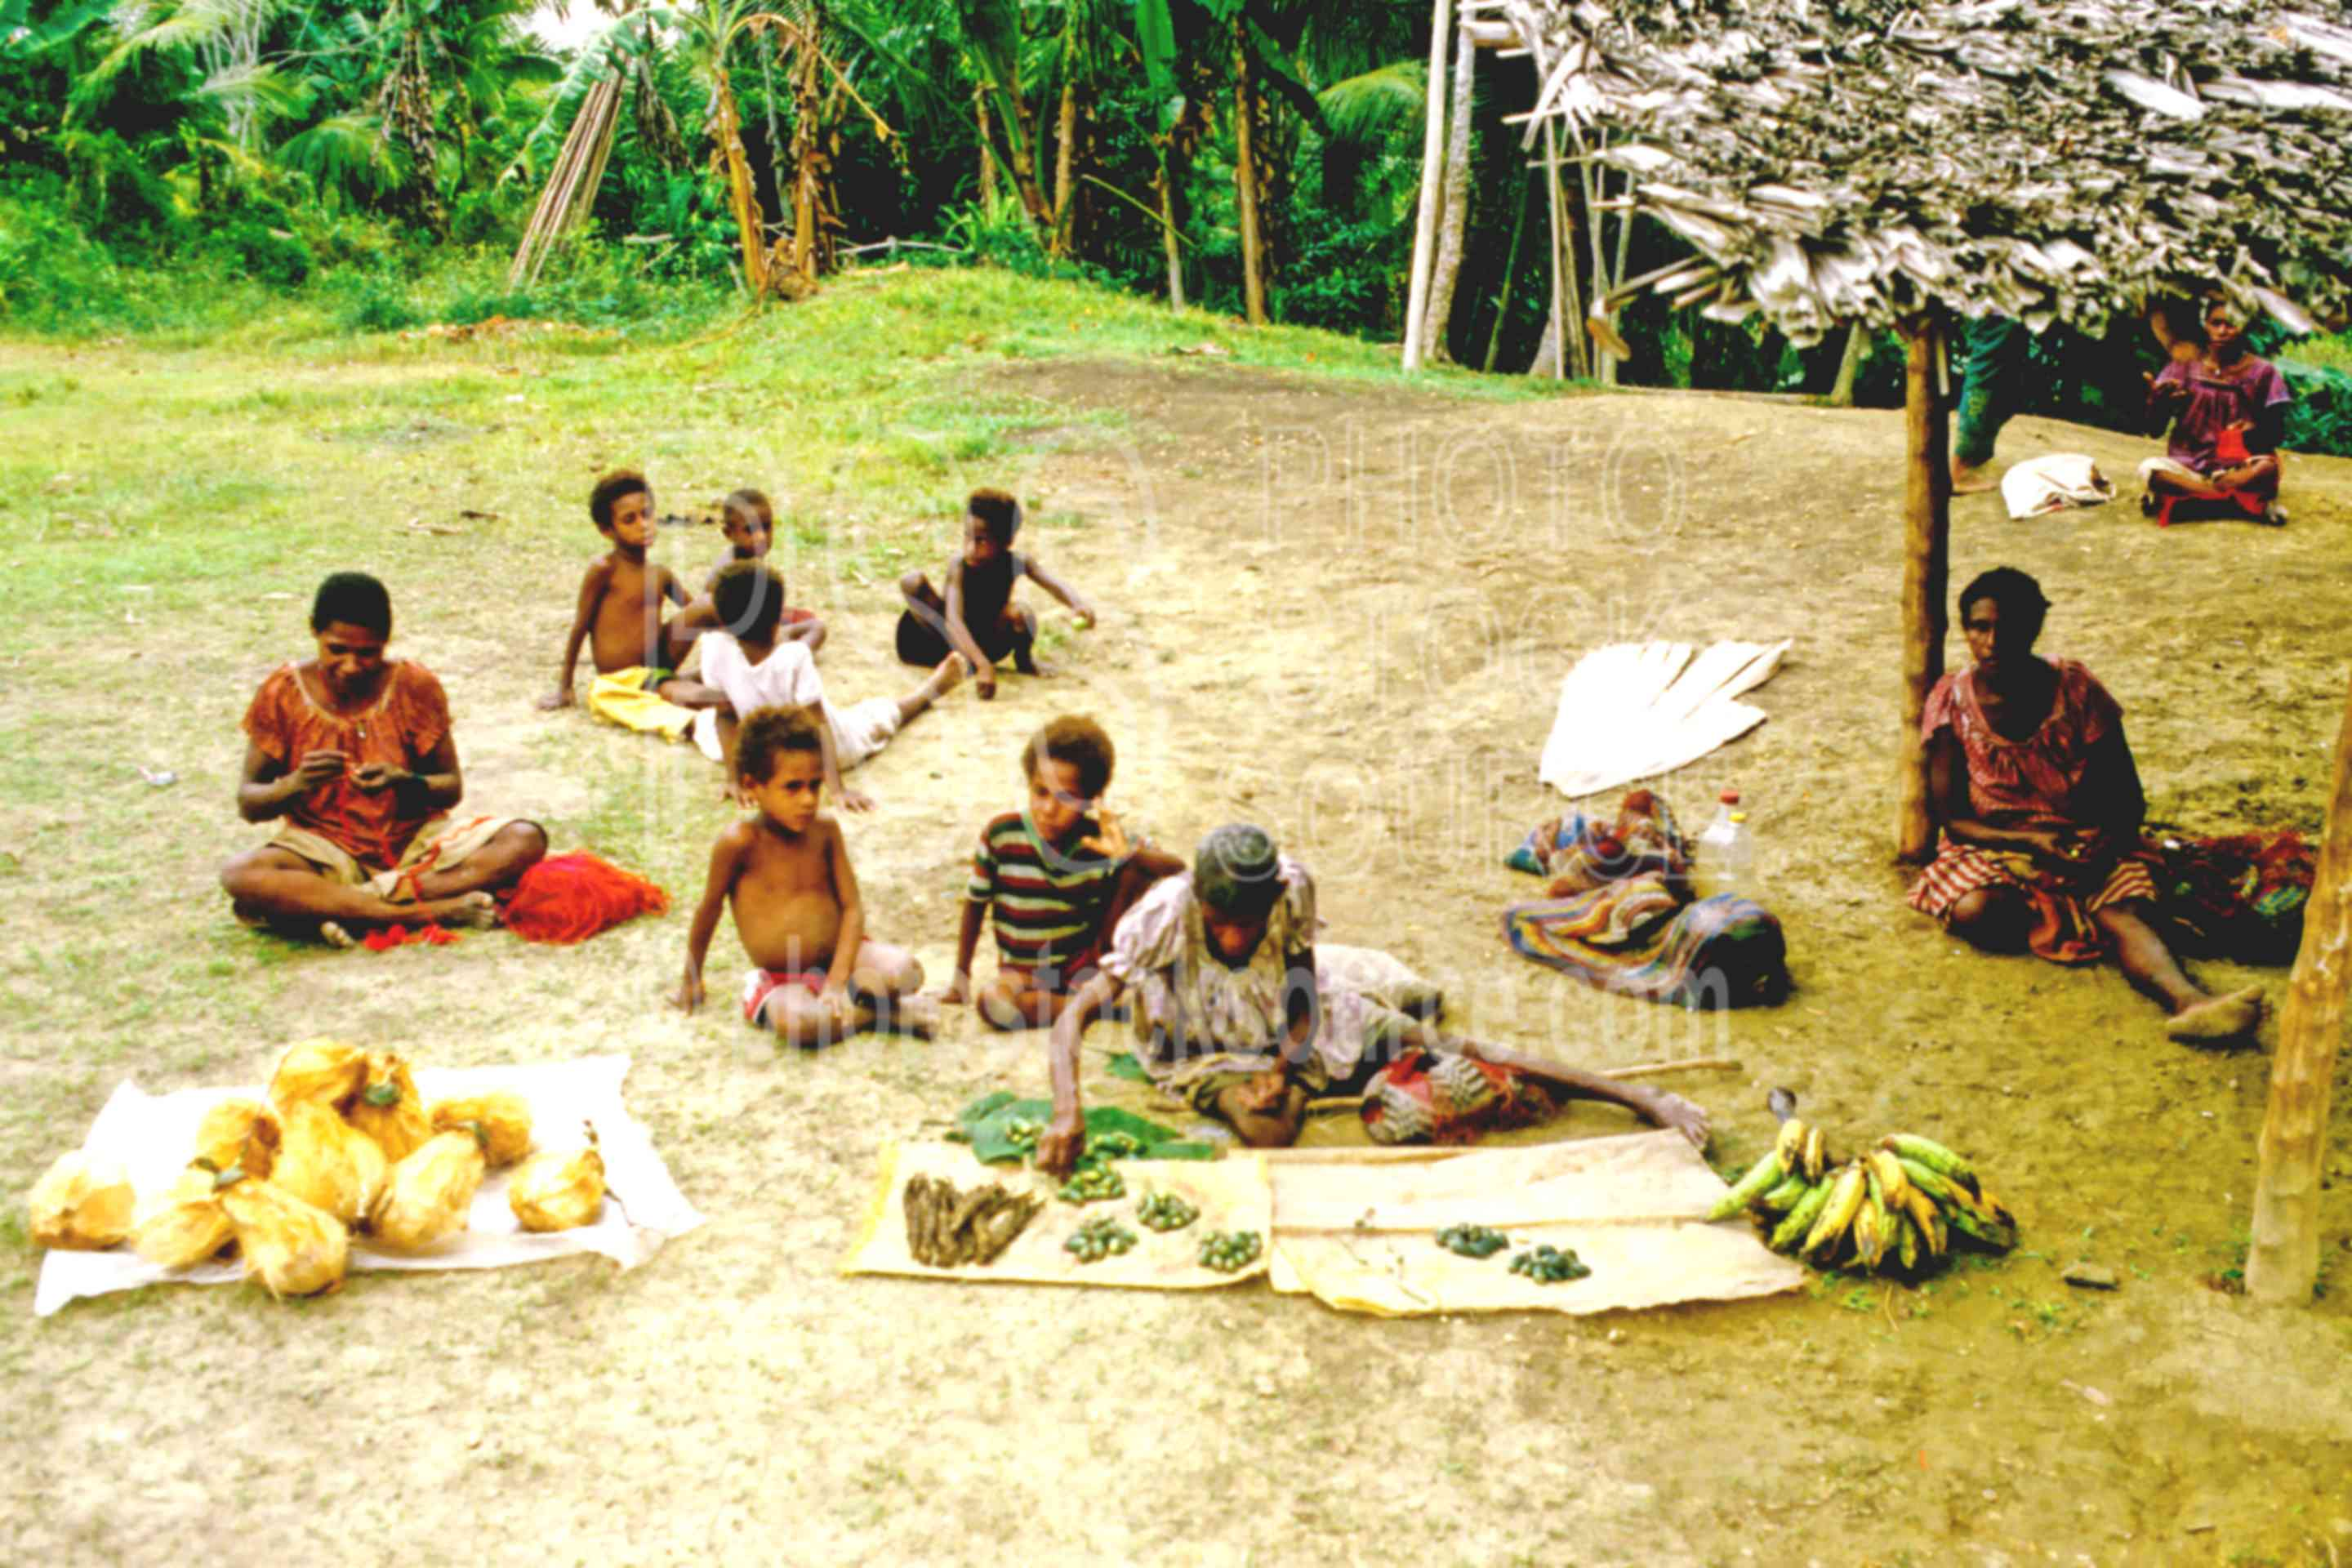 Roadside Market,fruit,market,kids,boys,girl,fruit stand,png markets